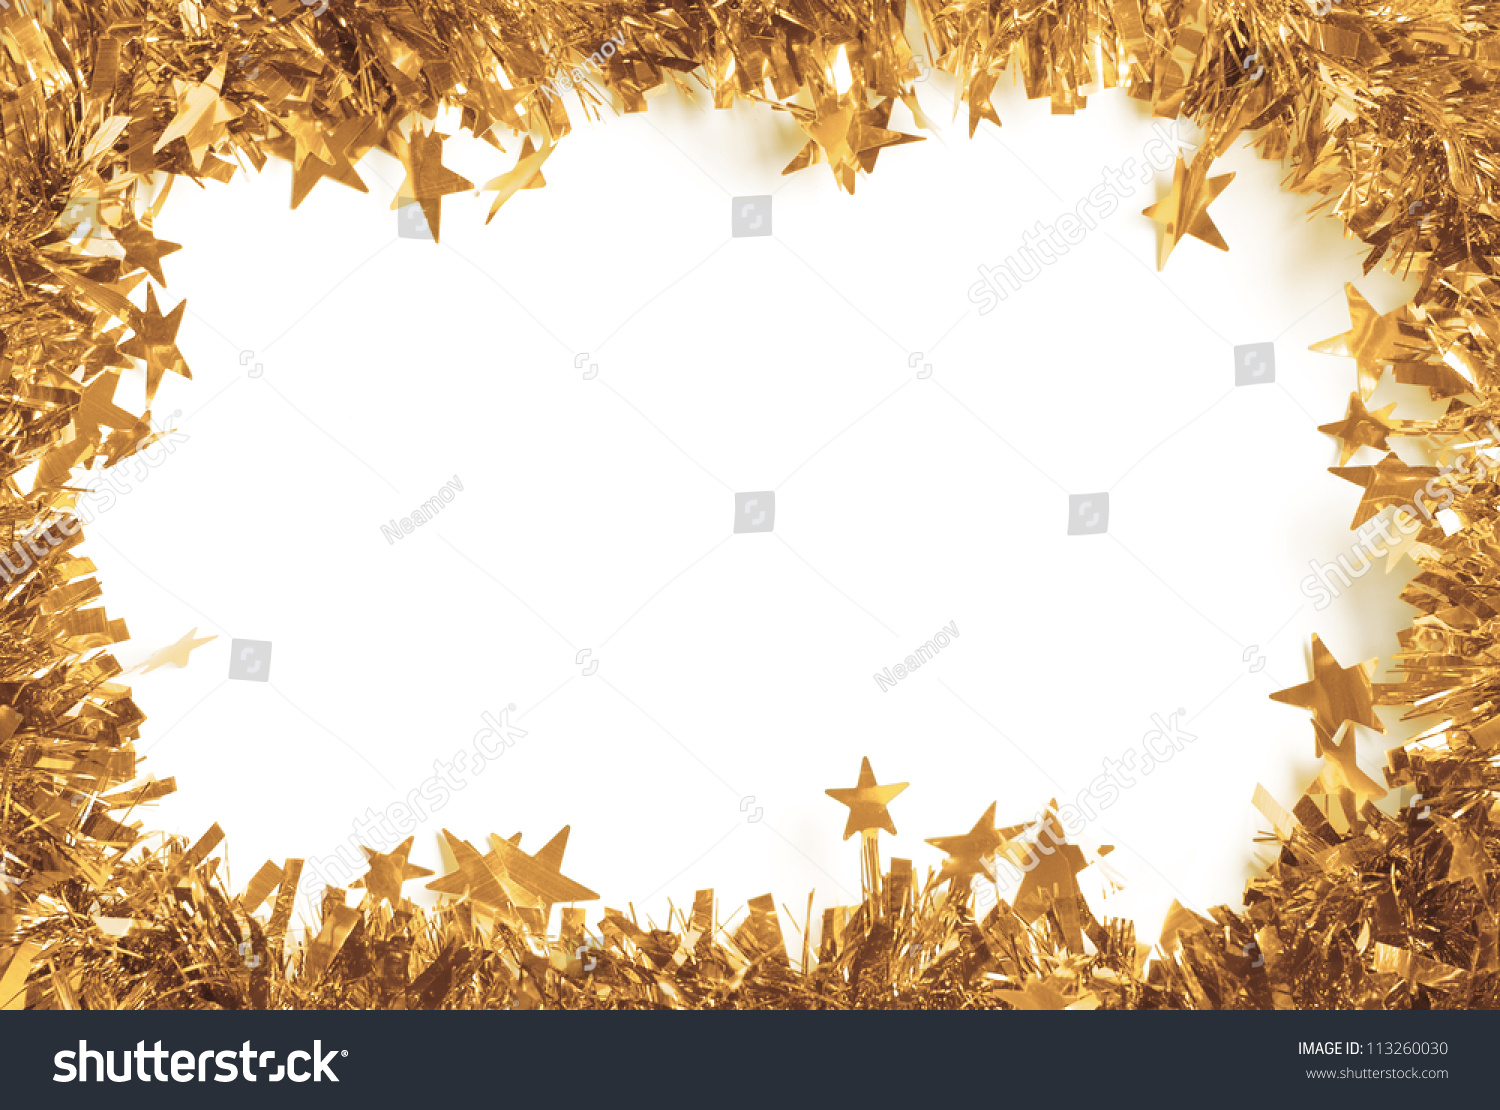 Christmas Gold Tinsel Border Isolated Against Stock Photo